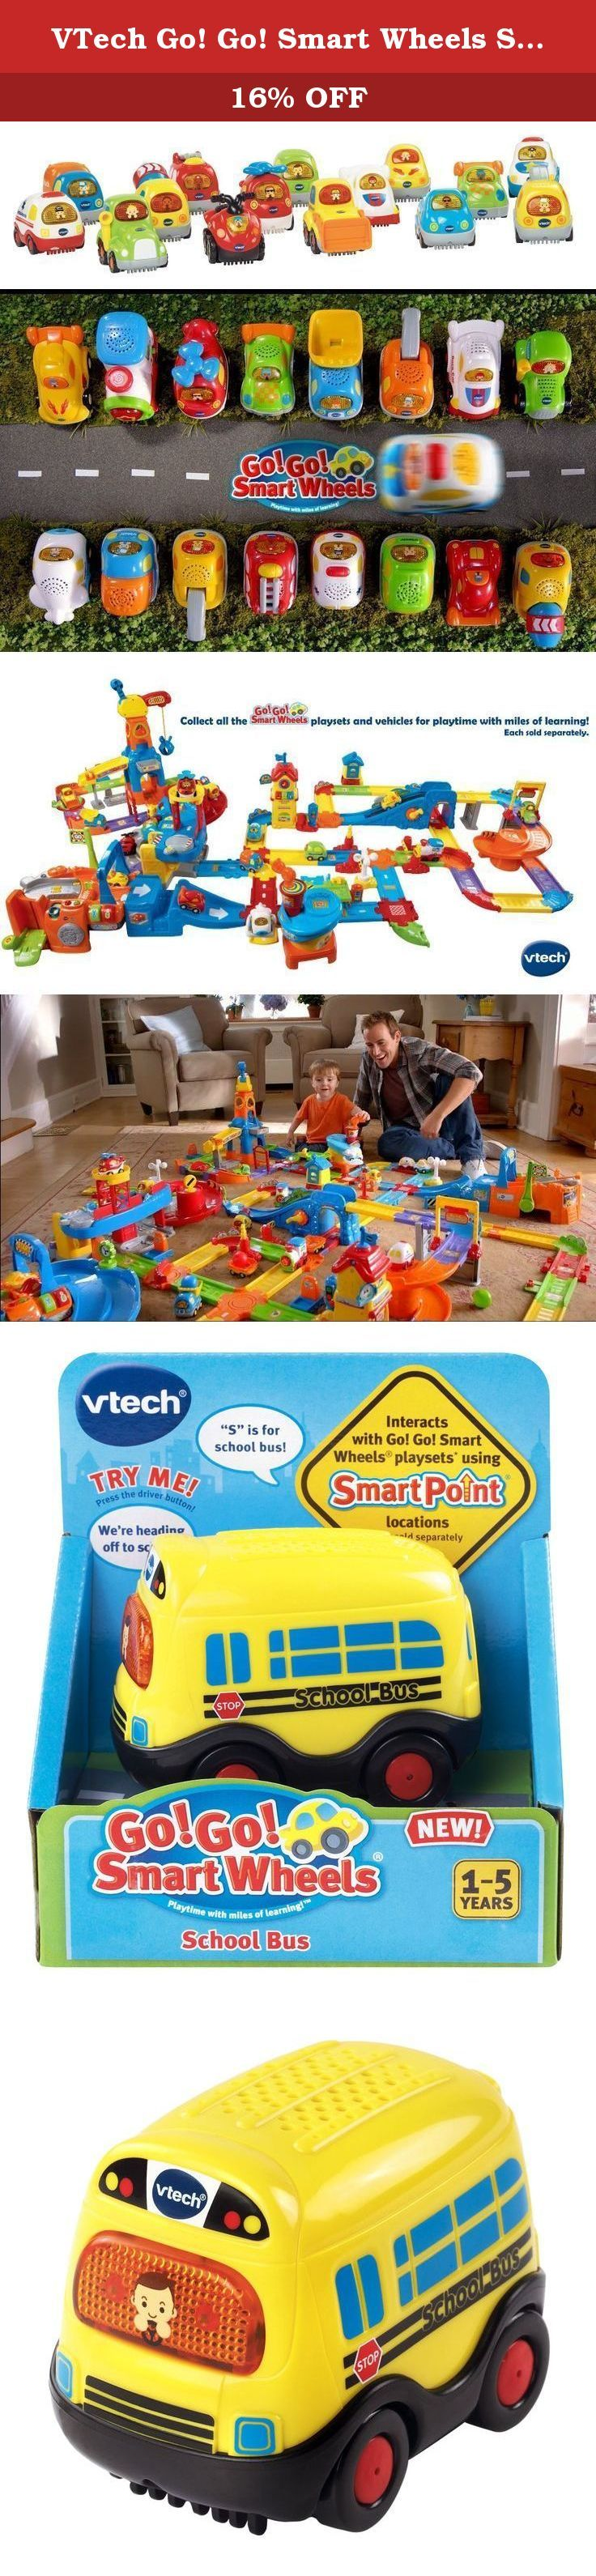 VTech Go! Go! Smart Wheels School Bus. Hop aboard and go to school on the Go! Go! Smart Wheels School Bus by VTech! Perfectly-sized for little hands, it entertains your child with a light-up driver button that activates playful music and sounds. As your child pretends to take kids to school, they will learn about the letter S and the vehicle's name. The electronic school bus also responds to SmartPoint locations with different phrases and sound effects on all Go! Go! Smart Wheels playsets.